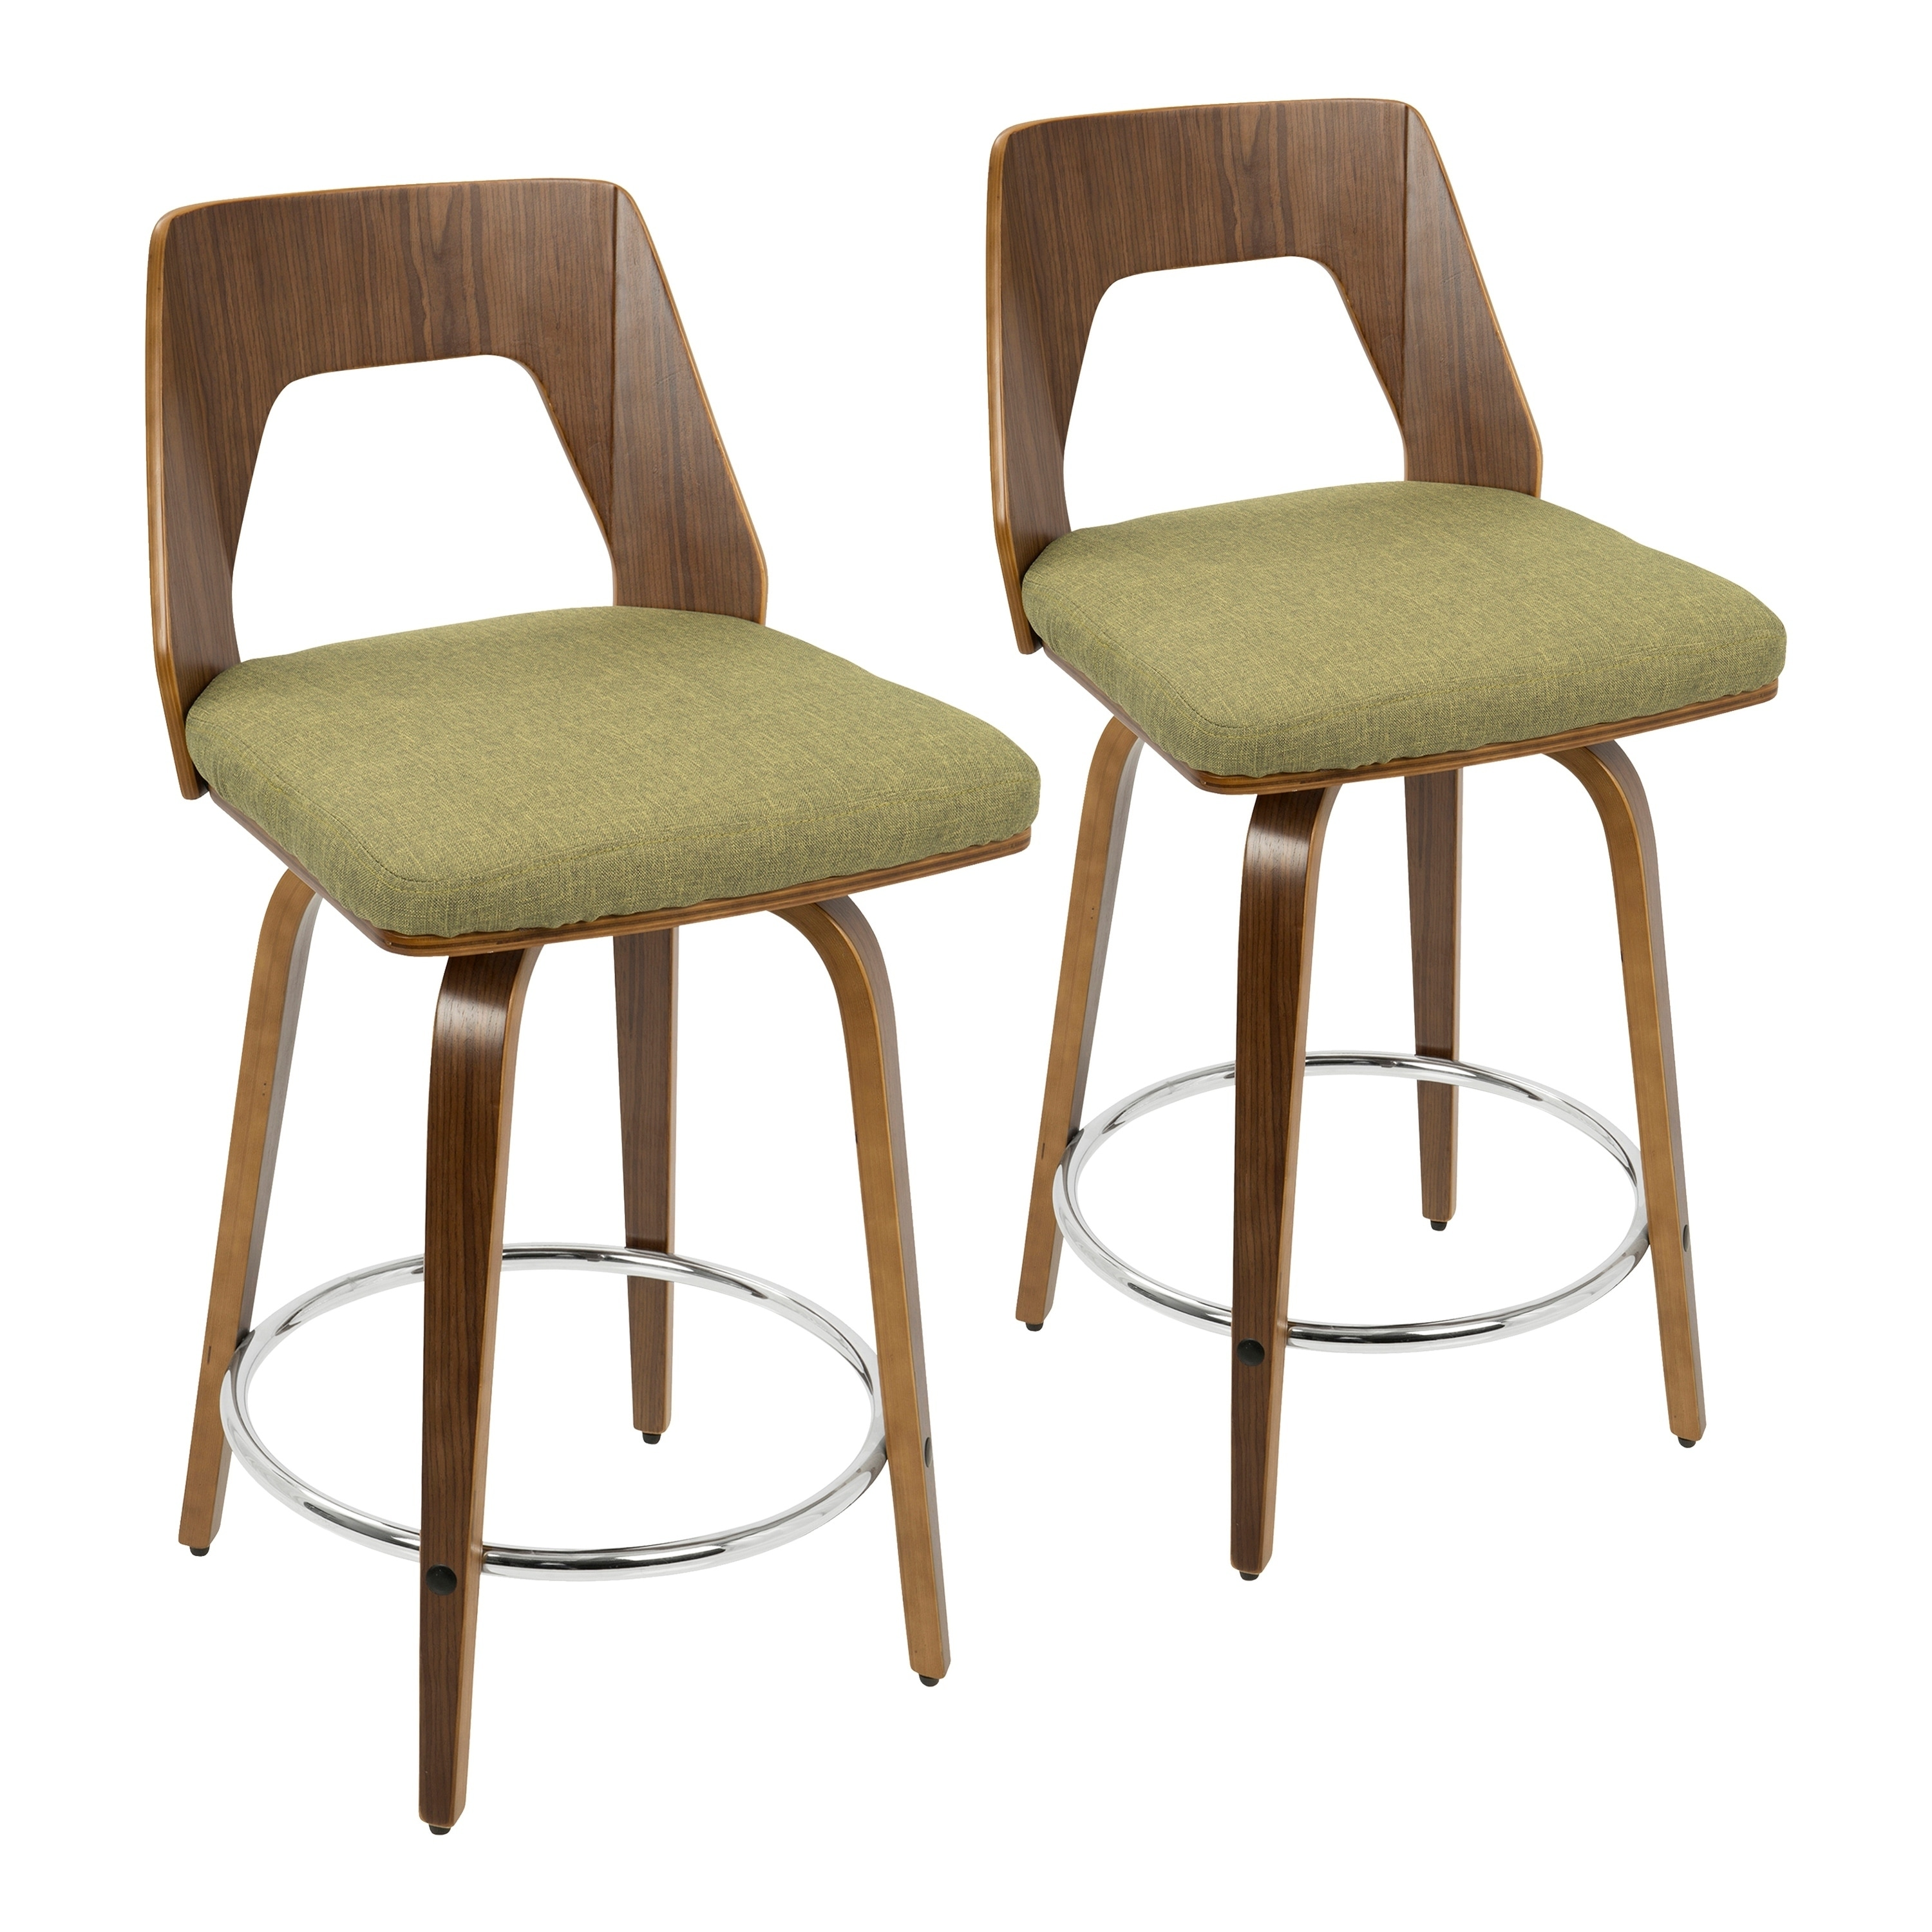 Phenomenal Carson Carrington Culnady Mid Century Modern Counter Stool Set Of 2 Squirreltailoven Fun Painted Chair Ideas Images Squirreltailovenorg